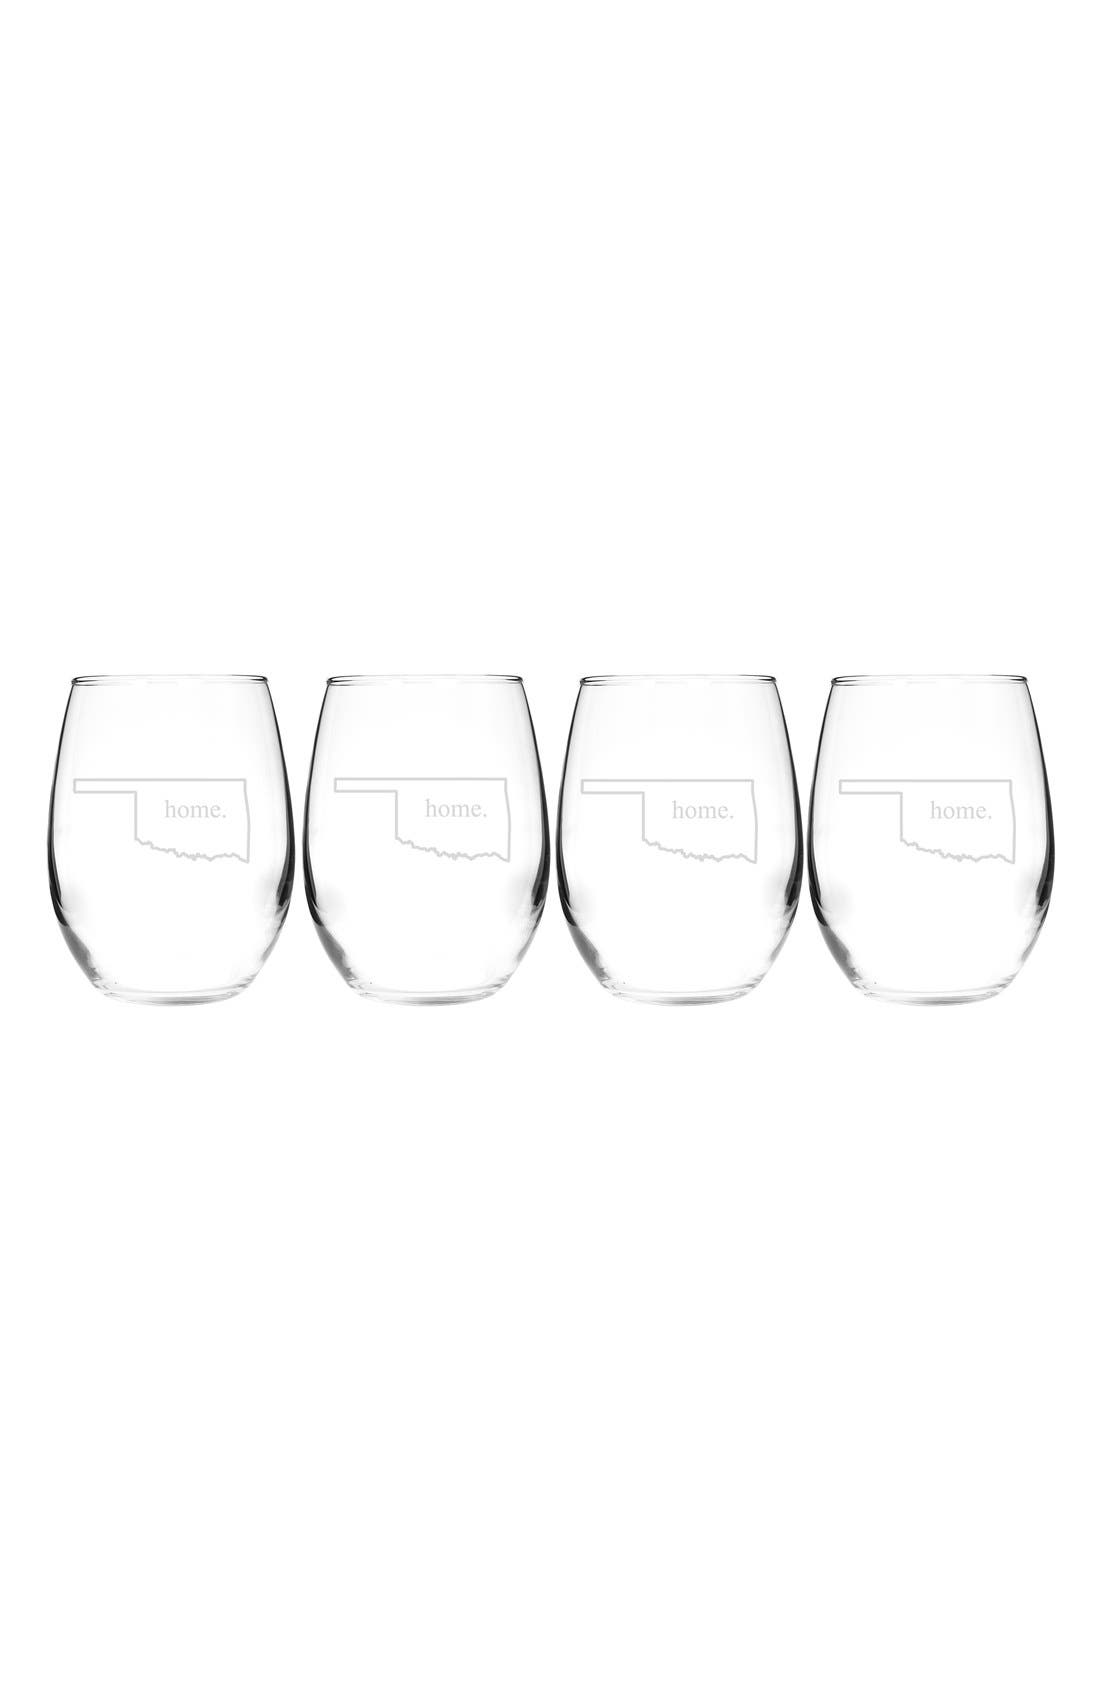 Home State Set of 4 Stemless Wine Glasses,                             Main thumbnail 37, color,